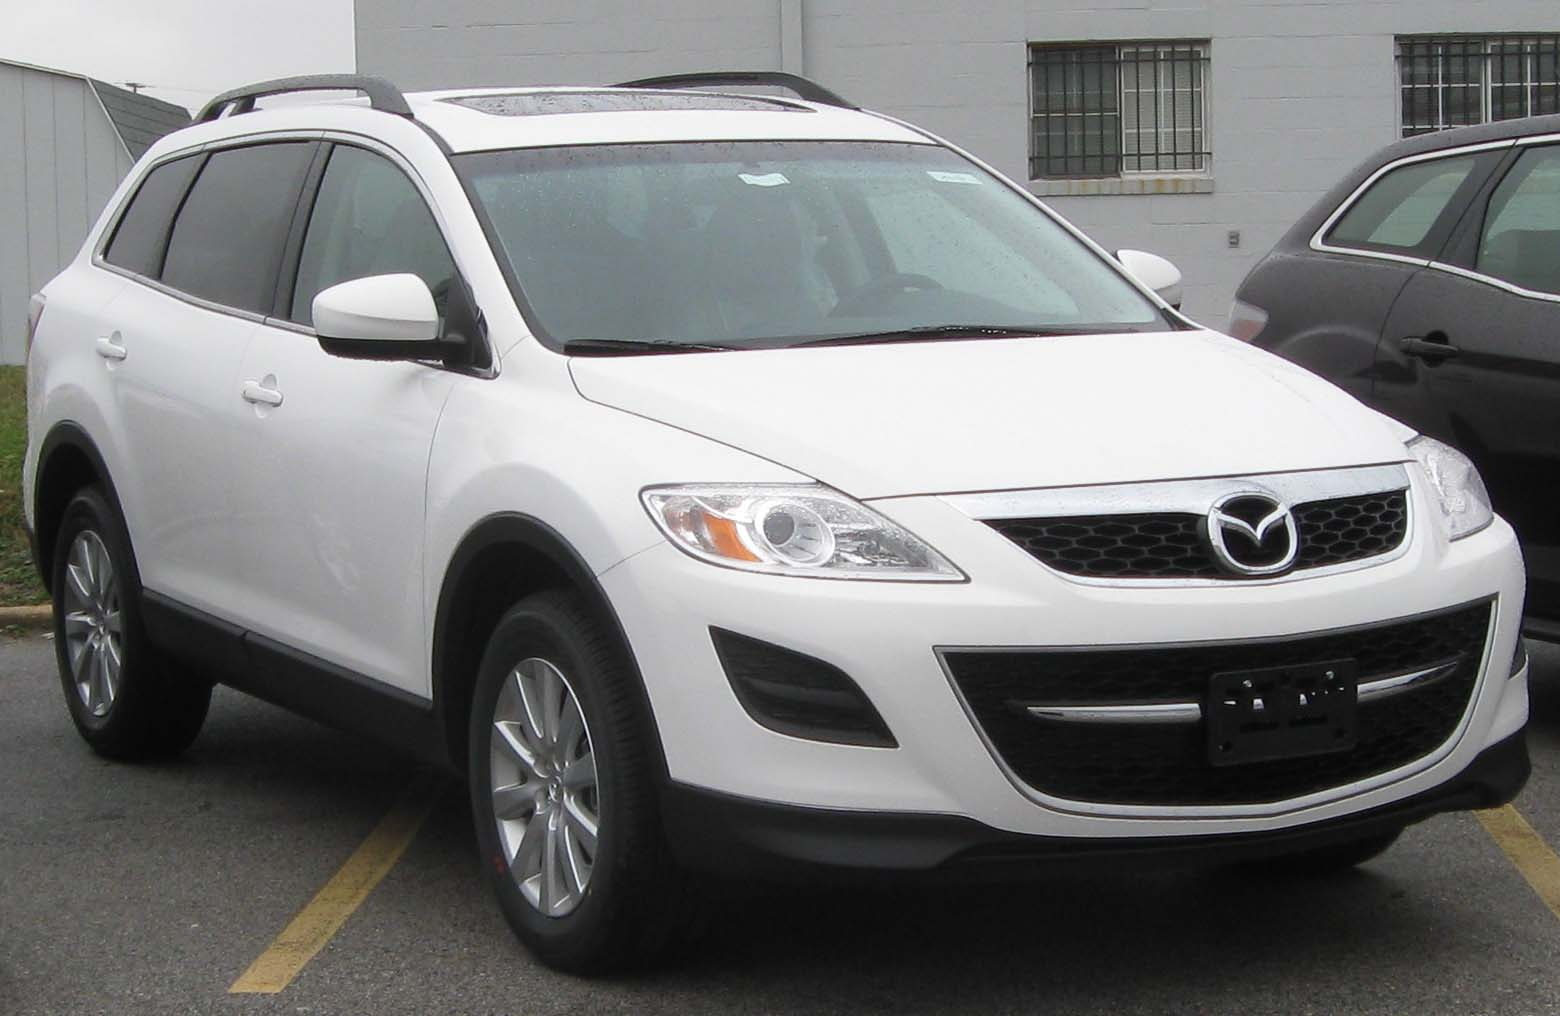 feds probe braking problems in mazda cx 9. Black Bedroom Furniture Sets. Home Design Ideas